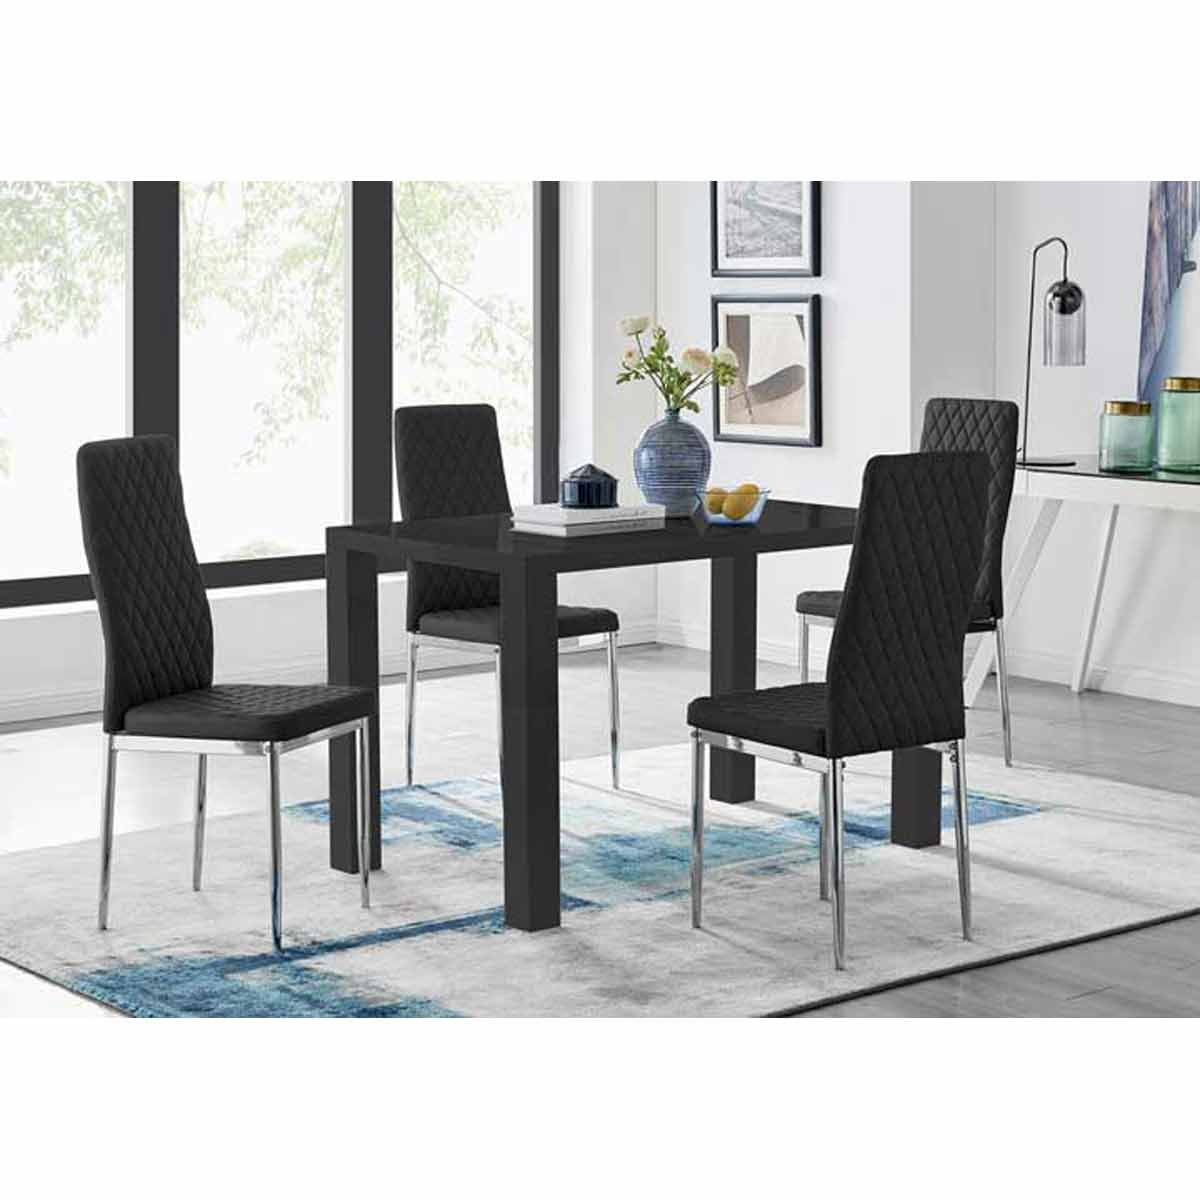 Furniture Box Pivero Black High Gloss Dining Table and 4 Black Milan Chairs Set